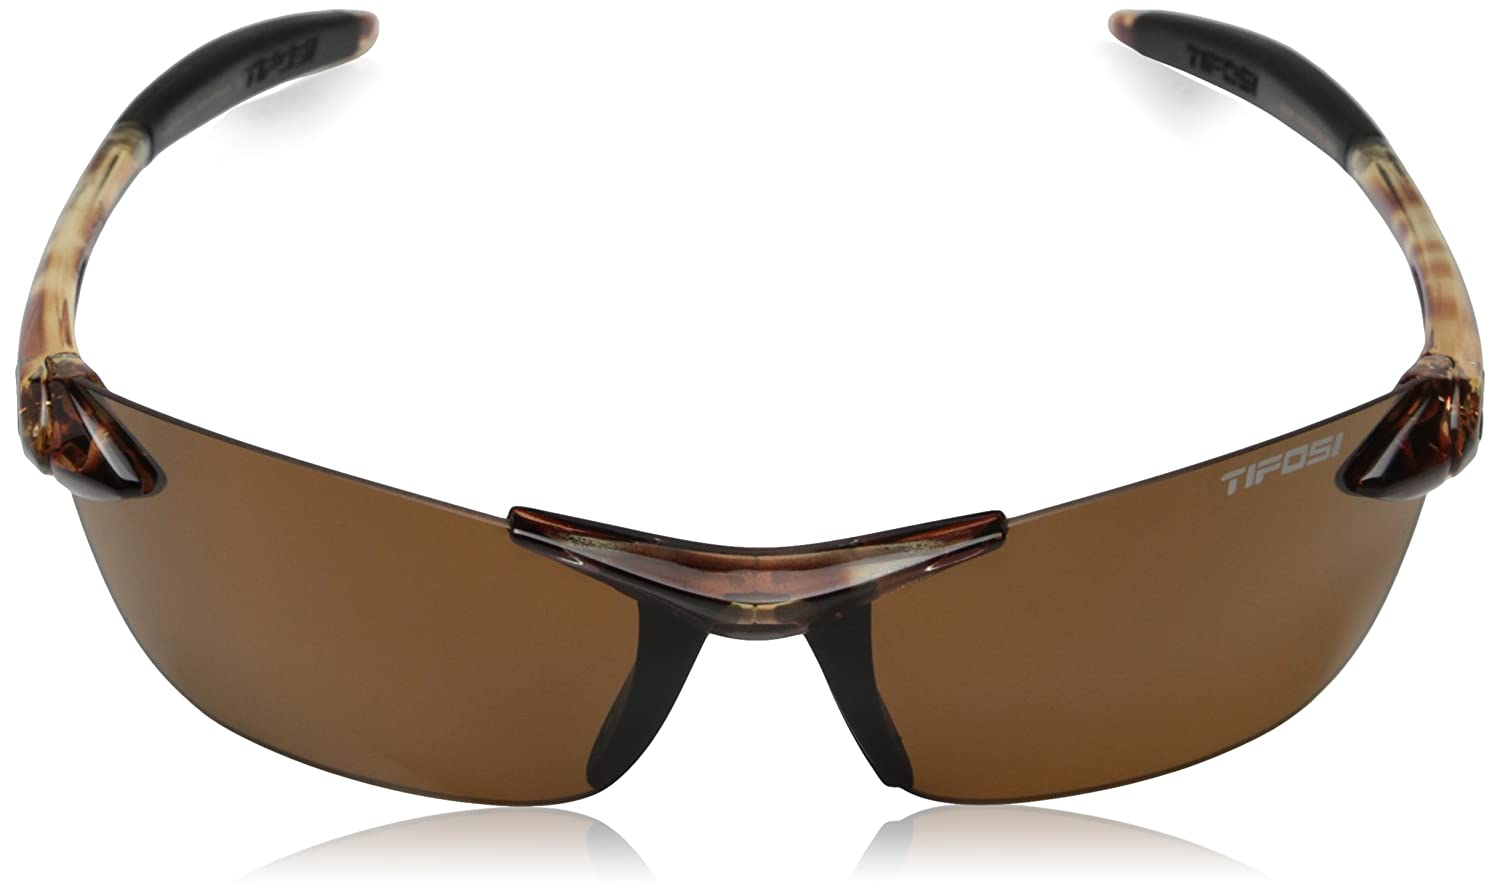 3ddf8fd42f Amazon.com  Tifosi Seek Polarized Wrap